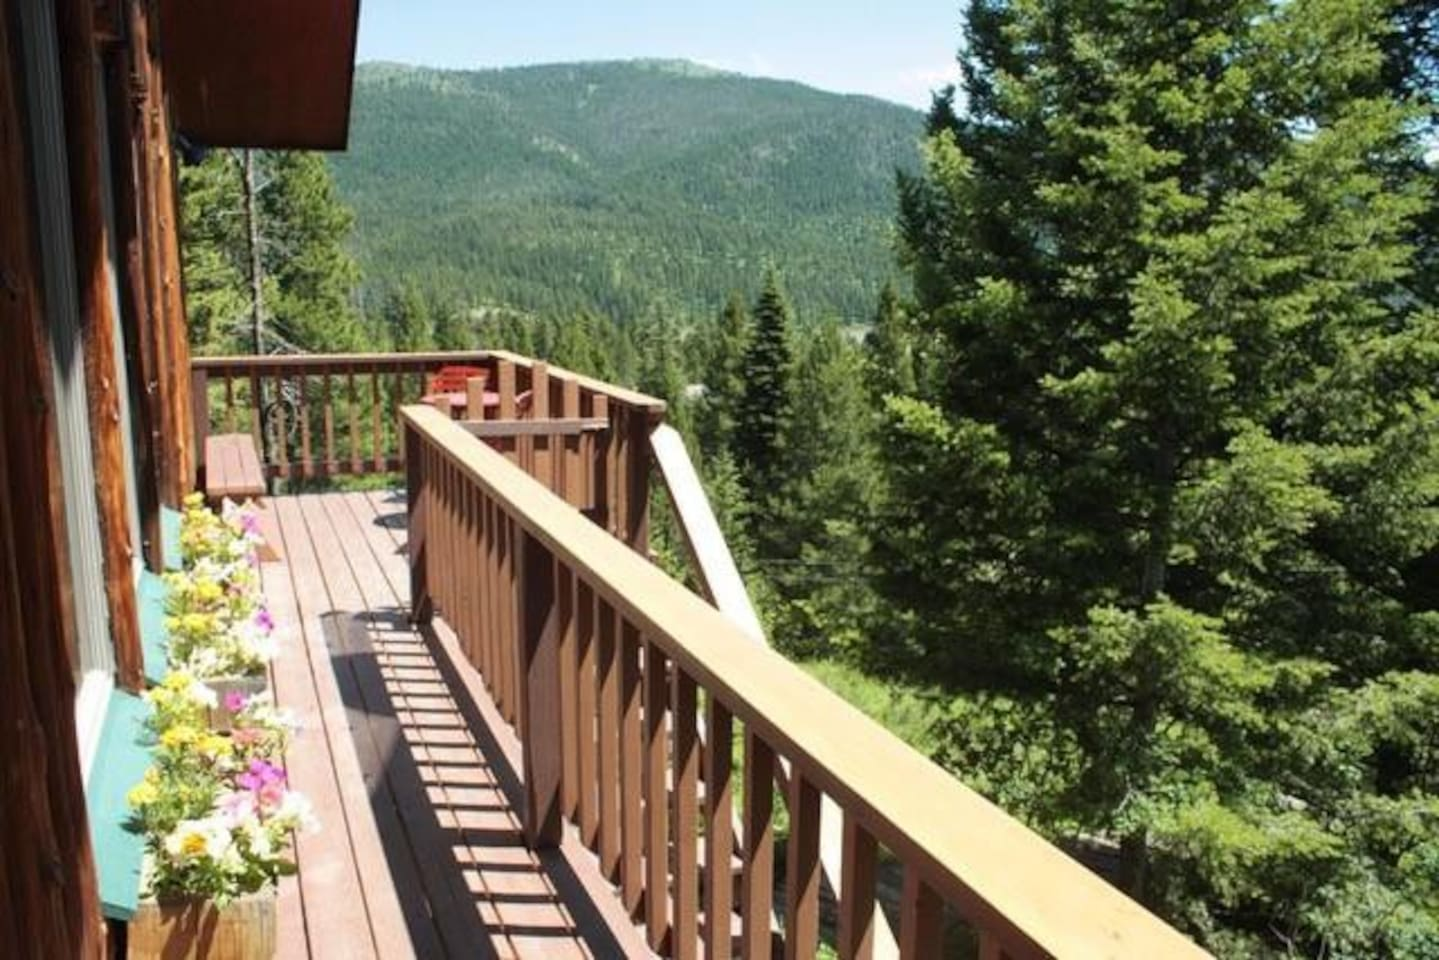 Great deck with flowers